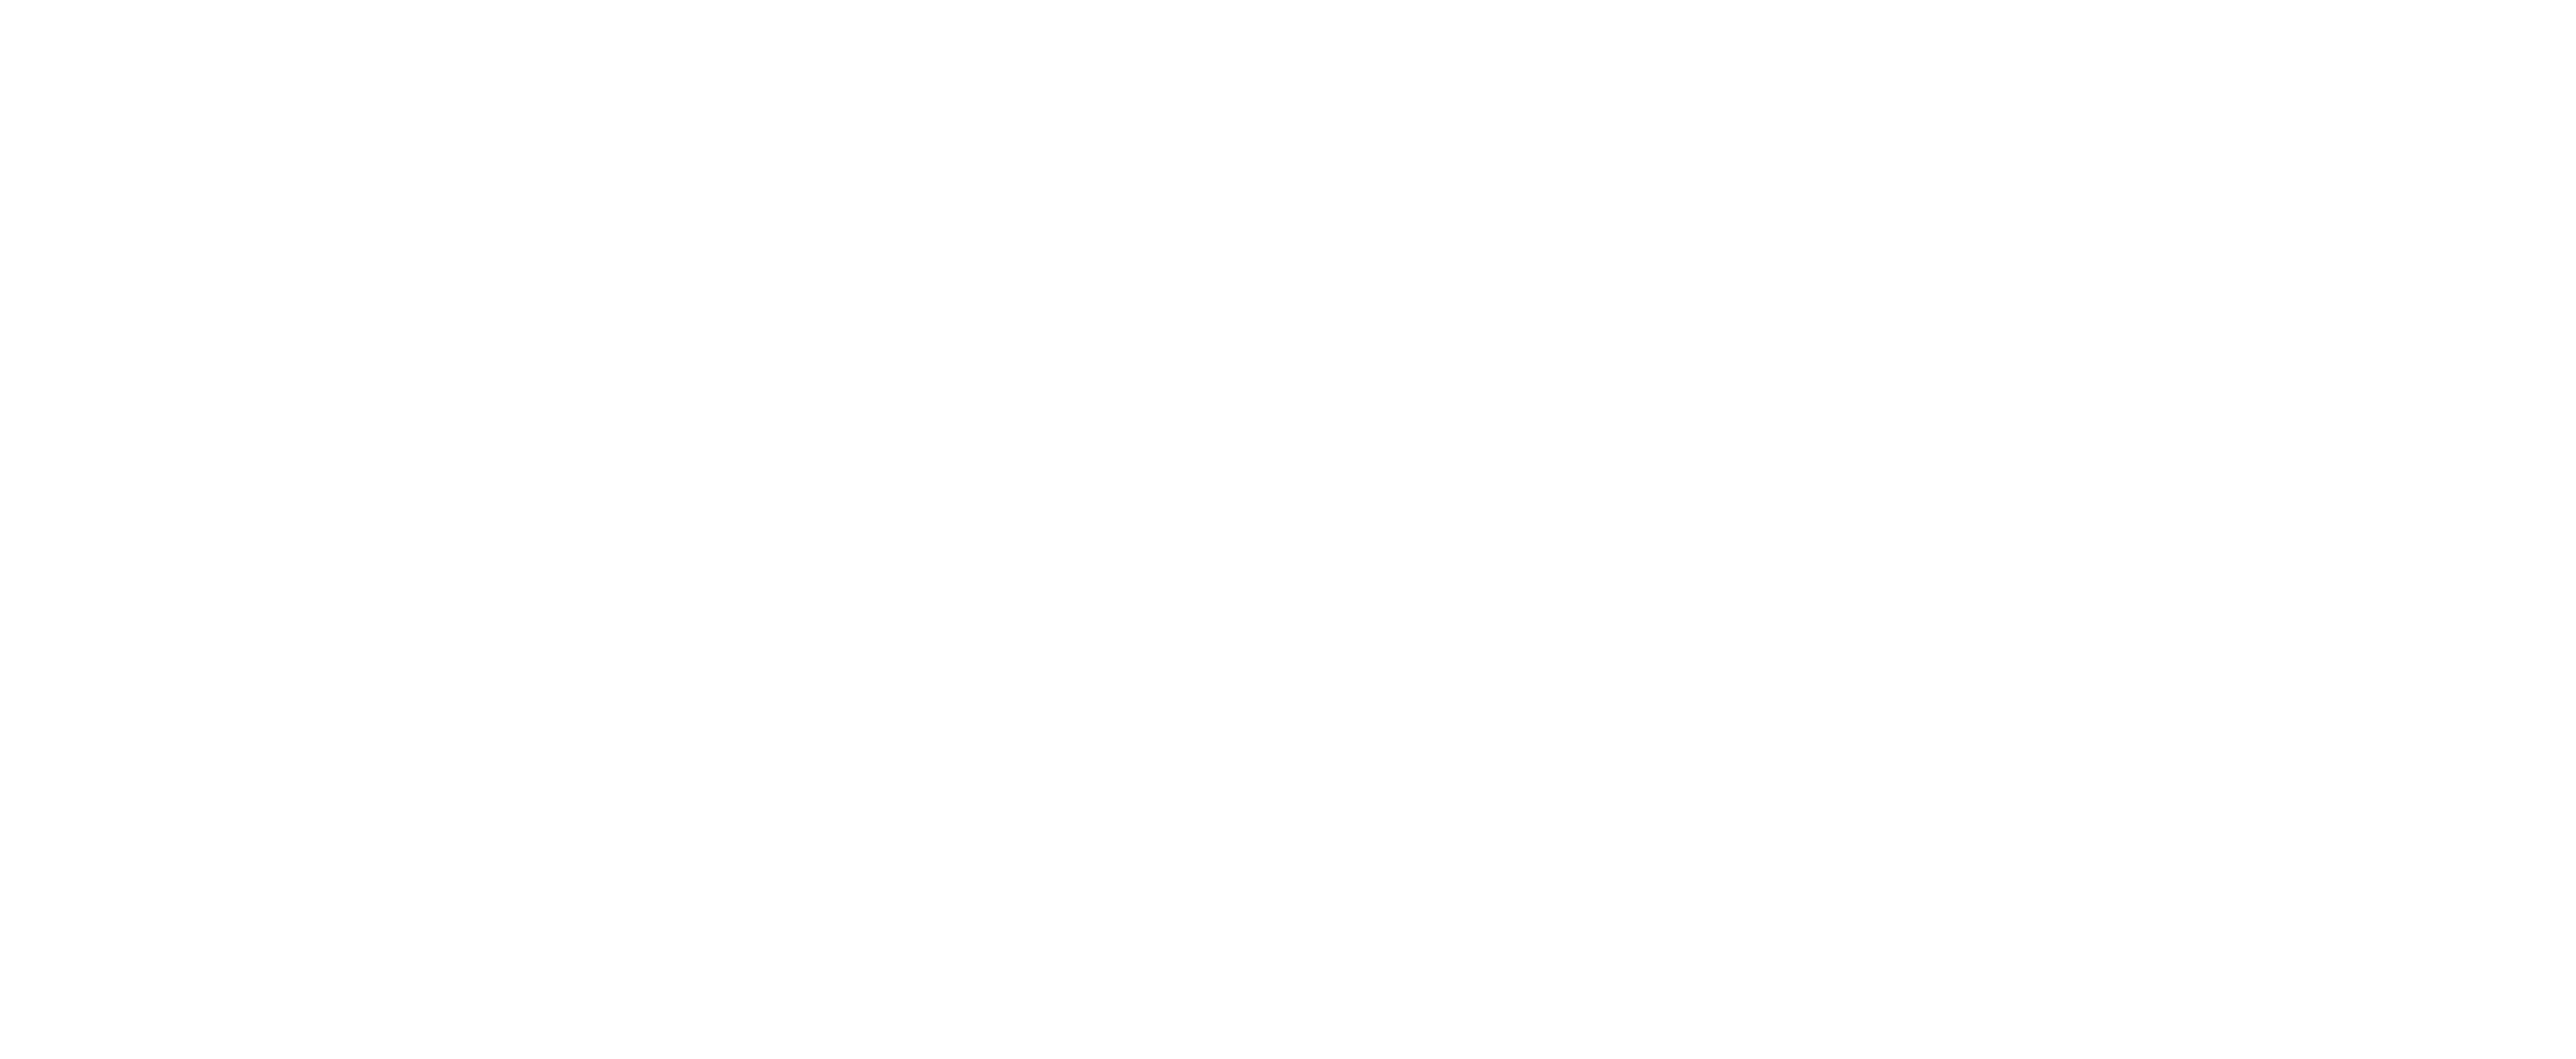 Groupe Export